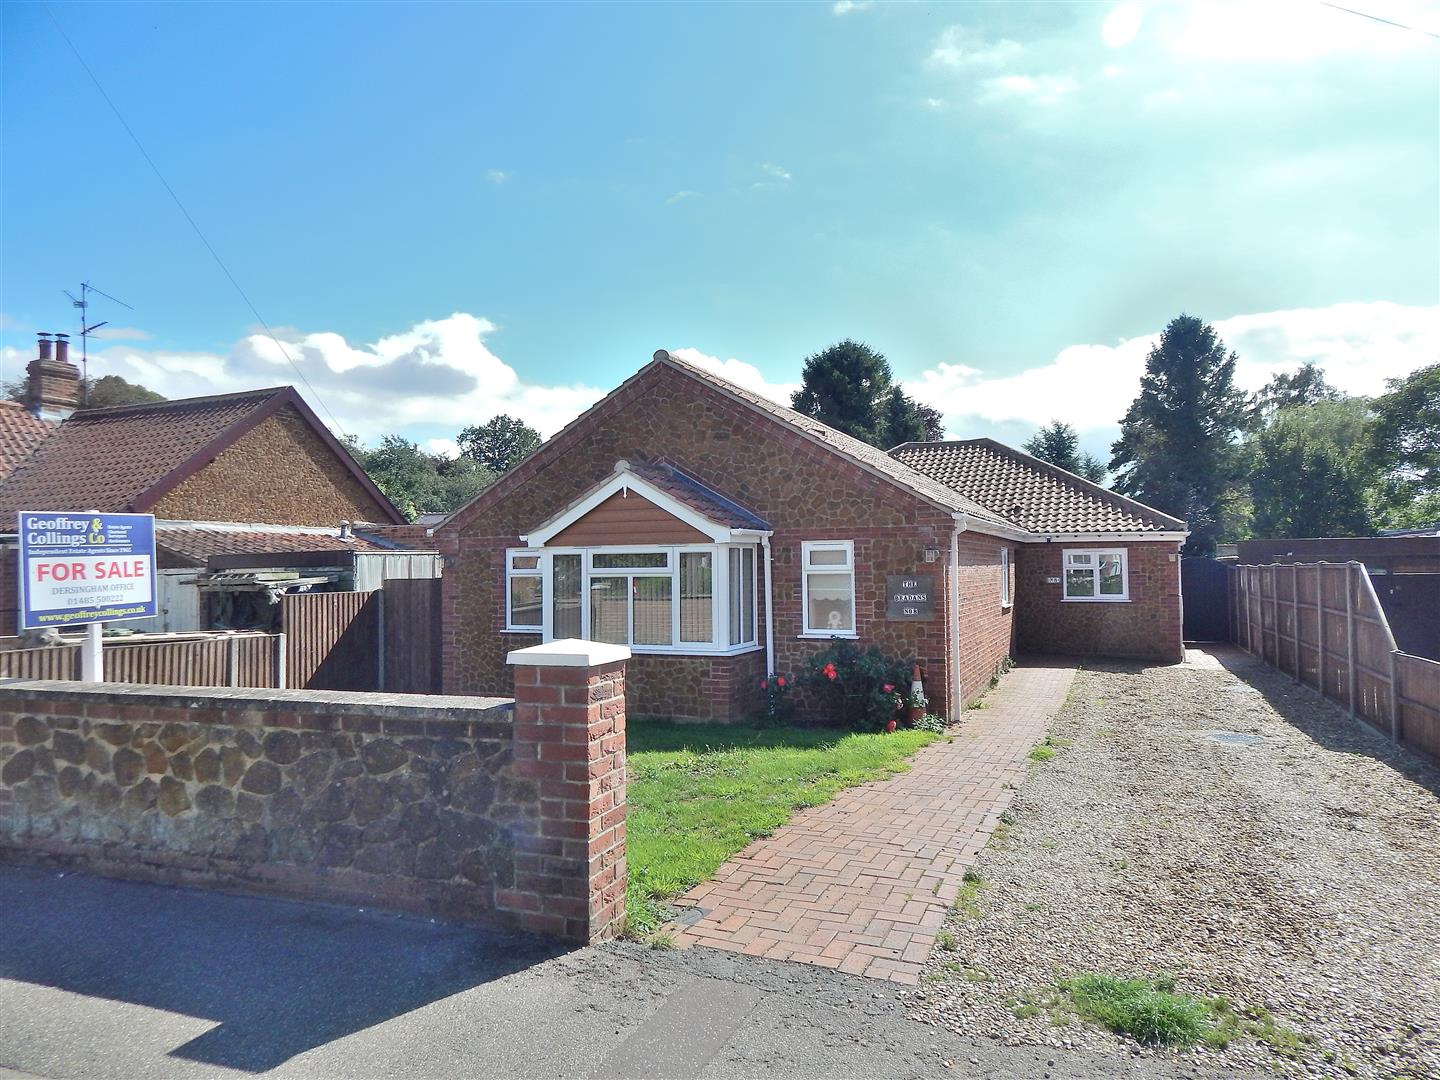 4 bed detached bungalow for sale in King's Lynn, PE31 7QL 0